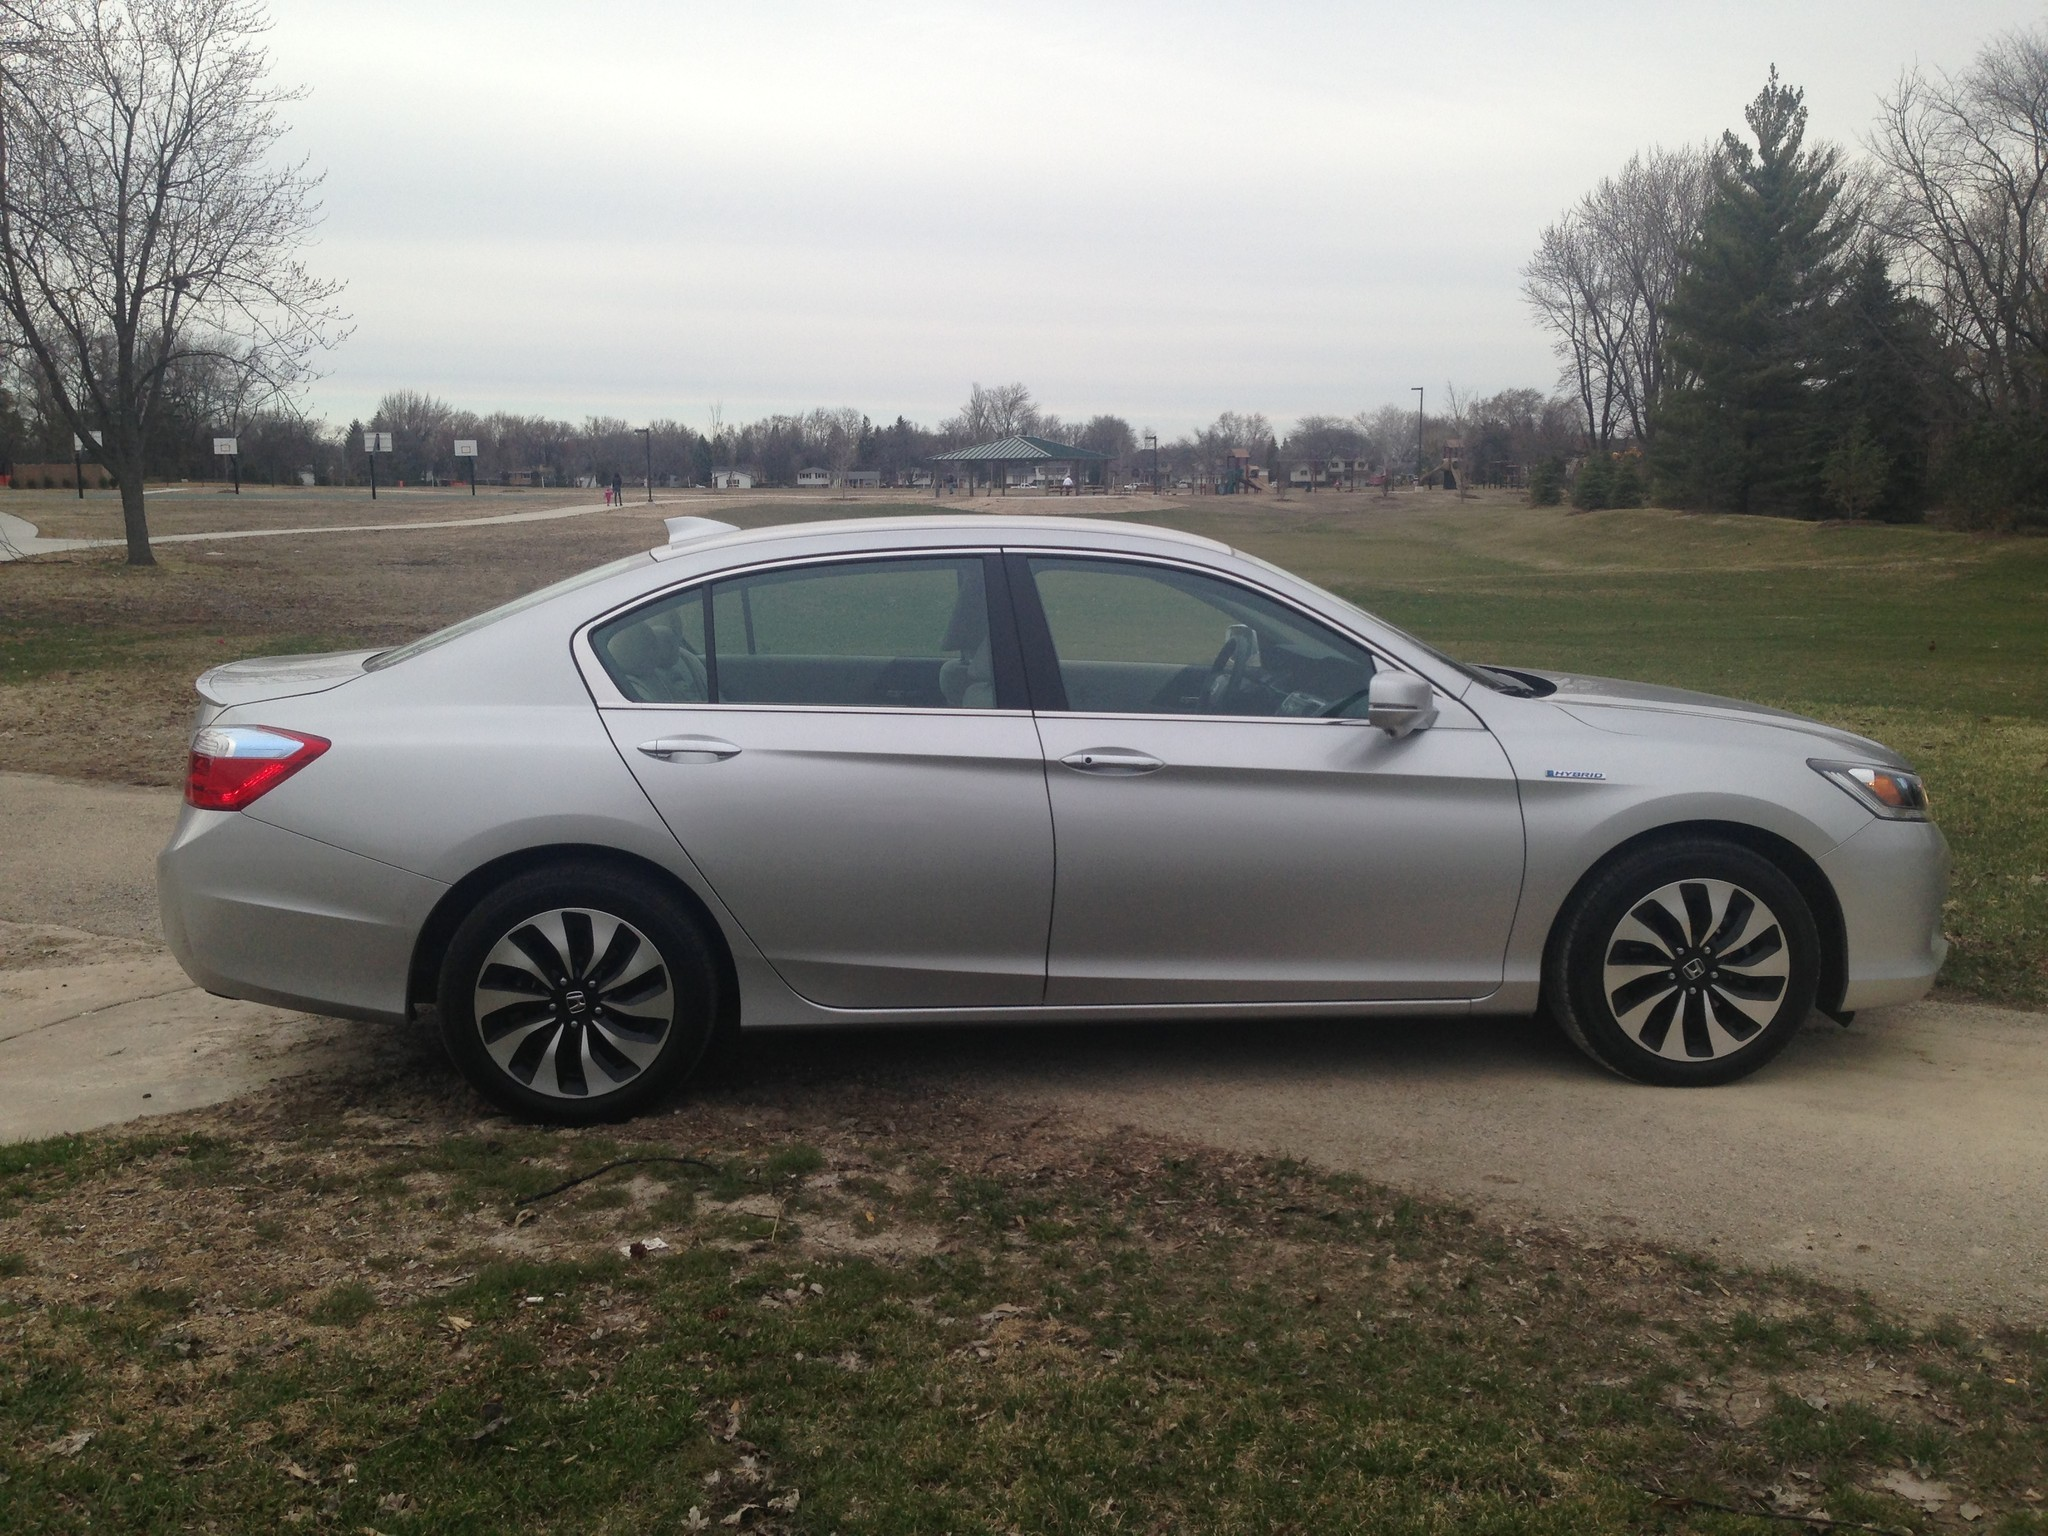 Review: 2014 Honda Accord Hybrid strikes a better balance